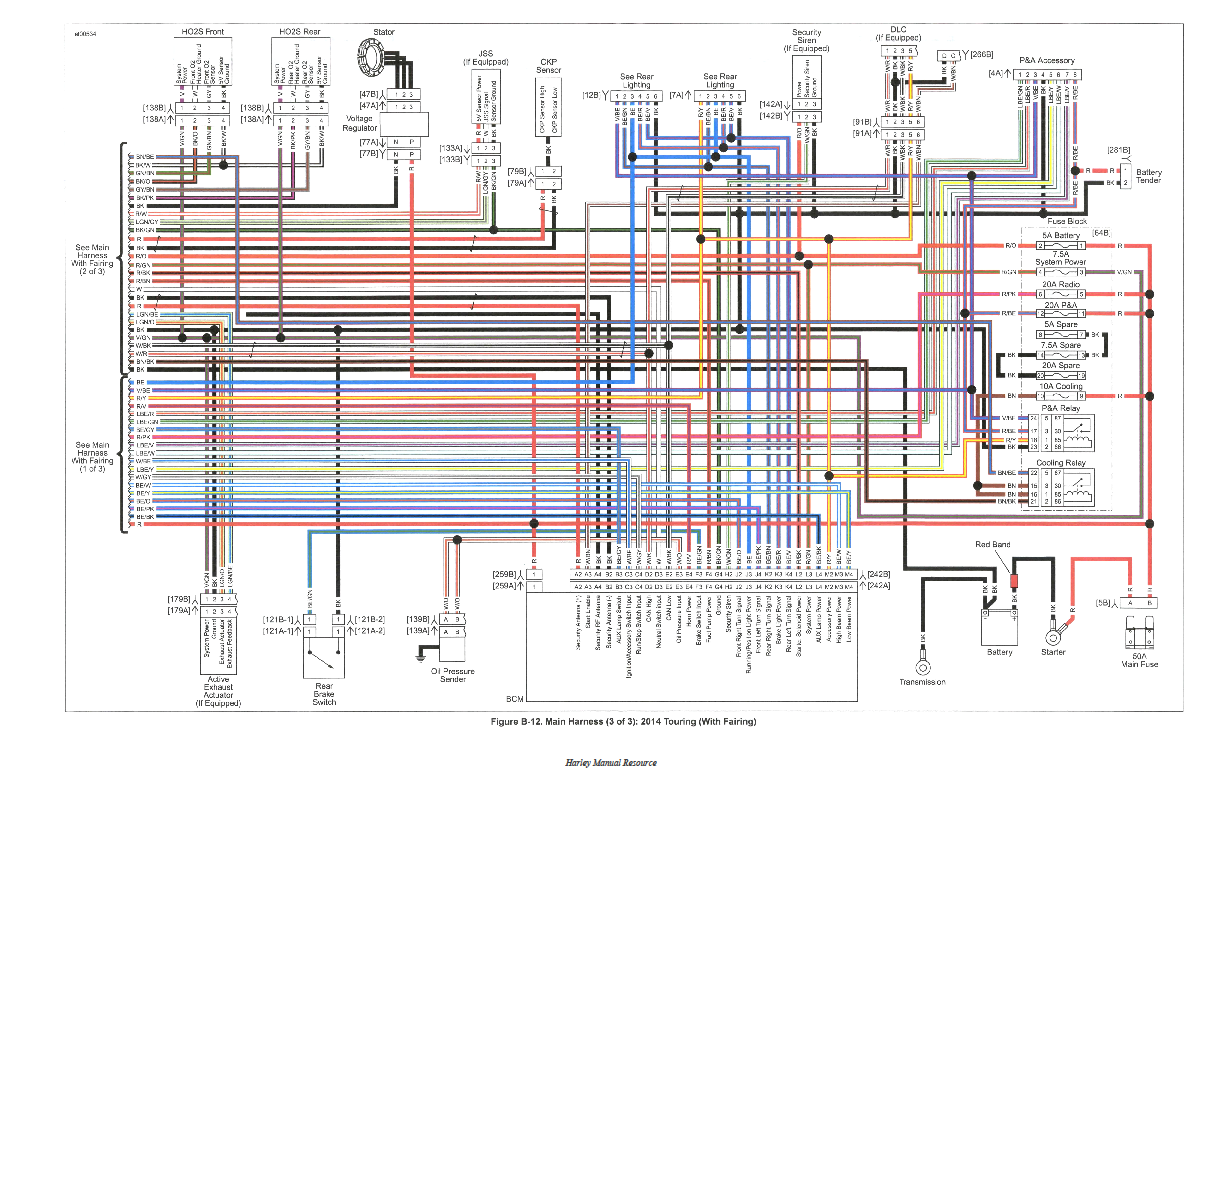 80 14_613_7162541d06ee90f59b30f0f216628817c66cf97f need 2014 or later street glide taillight wiring diagram harley Spark Plug Firing Order Diagram at bayanpartner.co